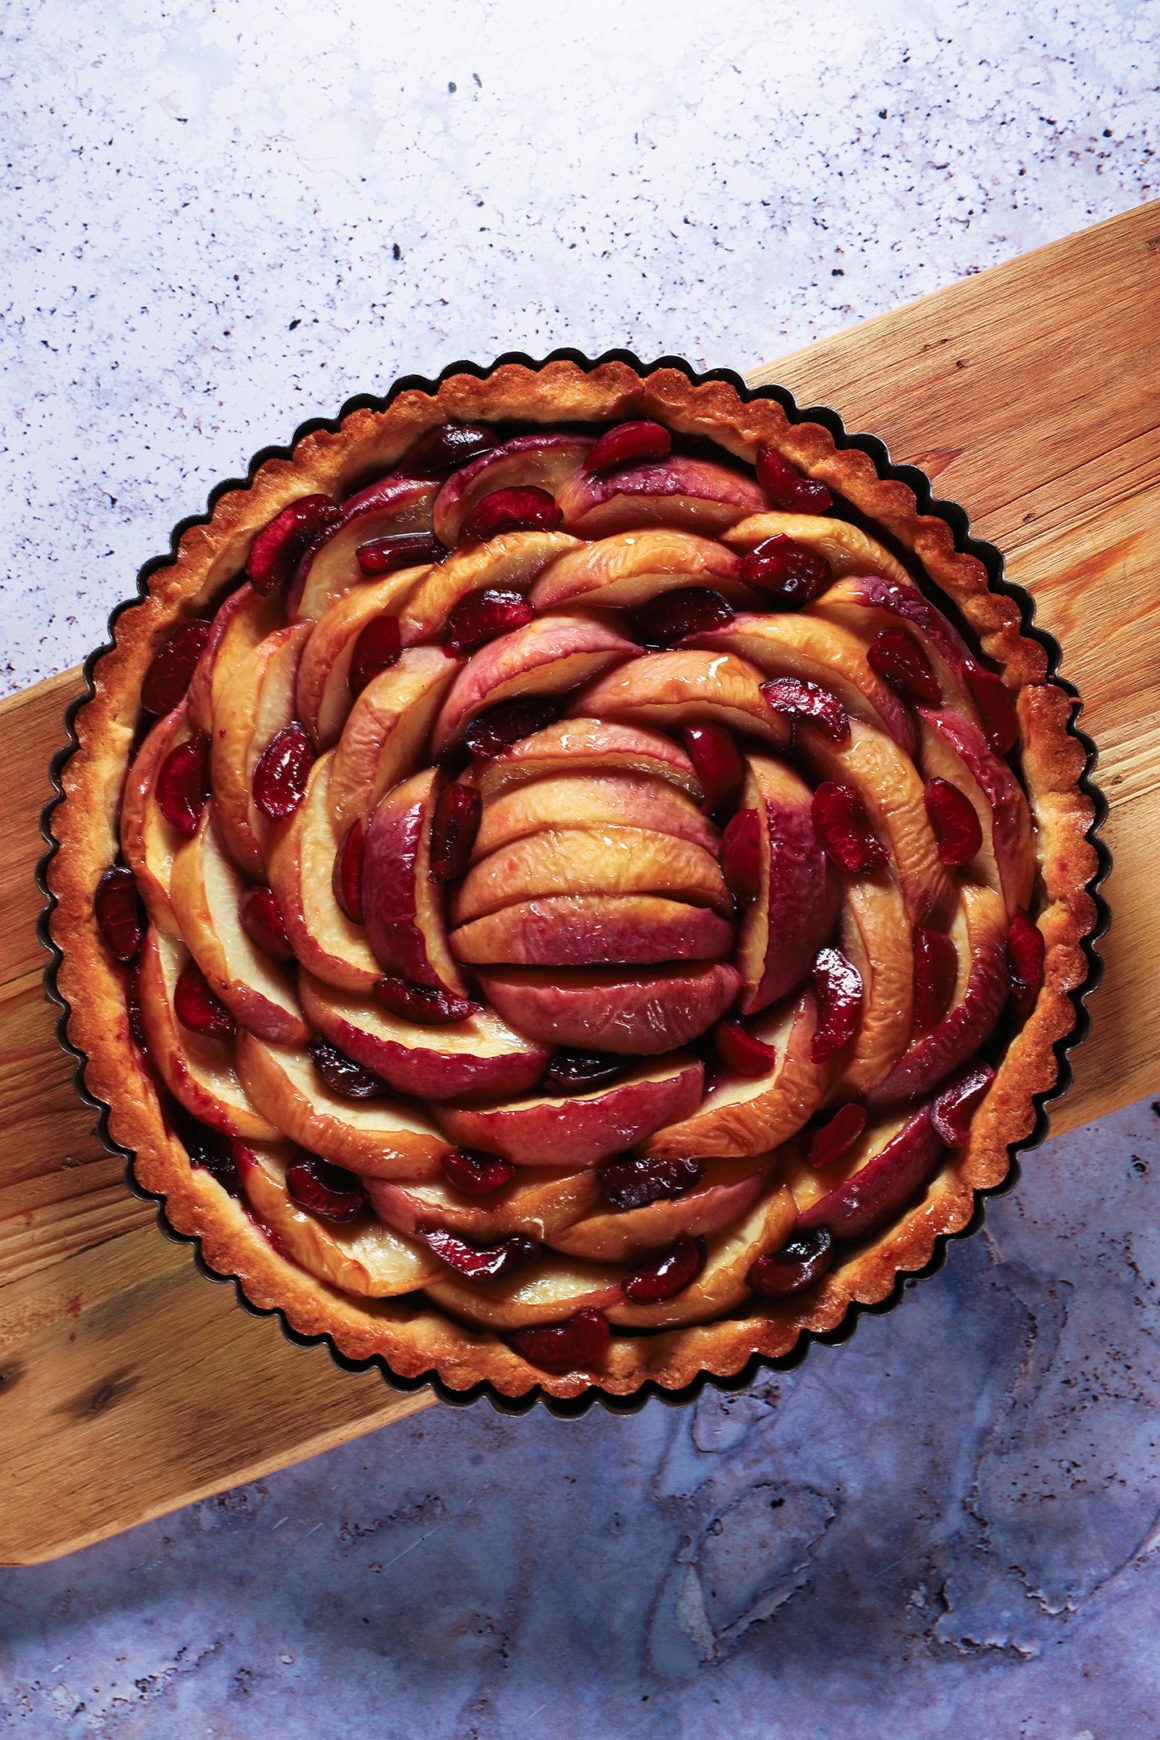 Peach and Cherry Tart Fresh from the Oven